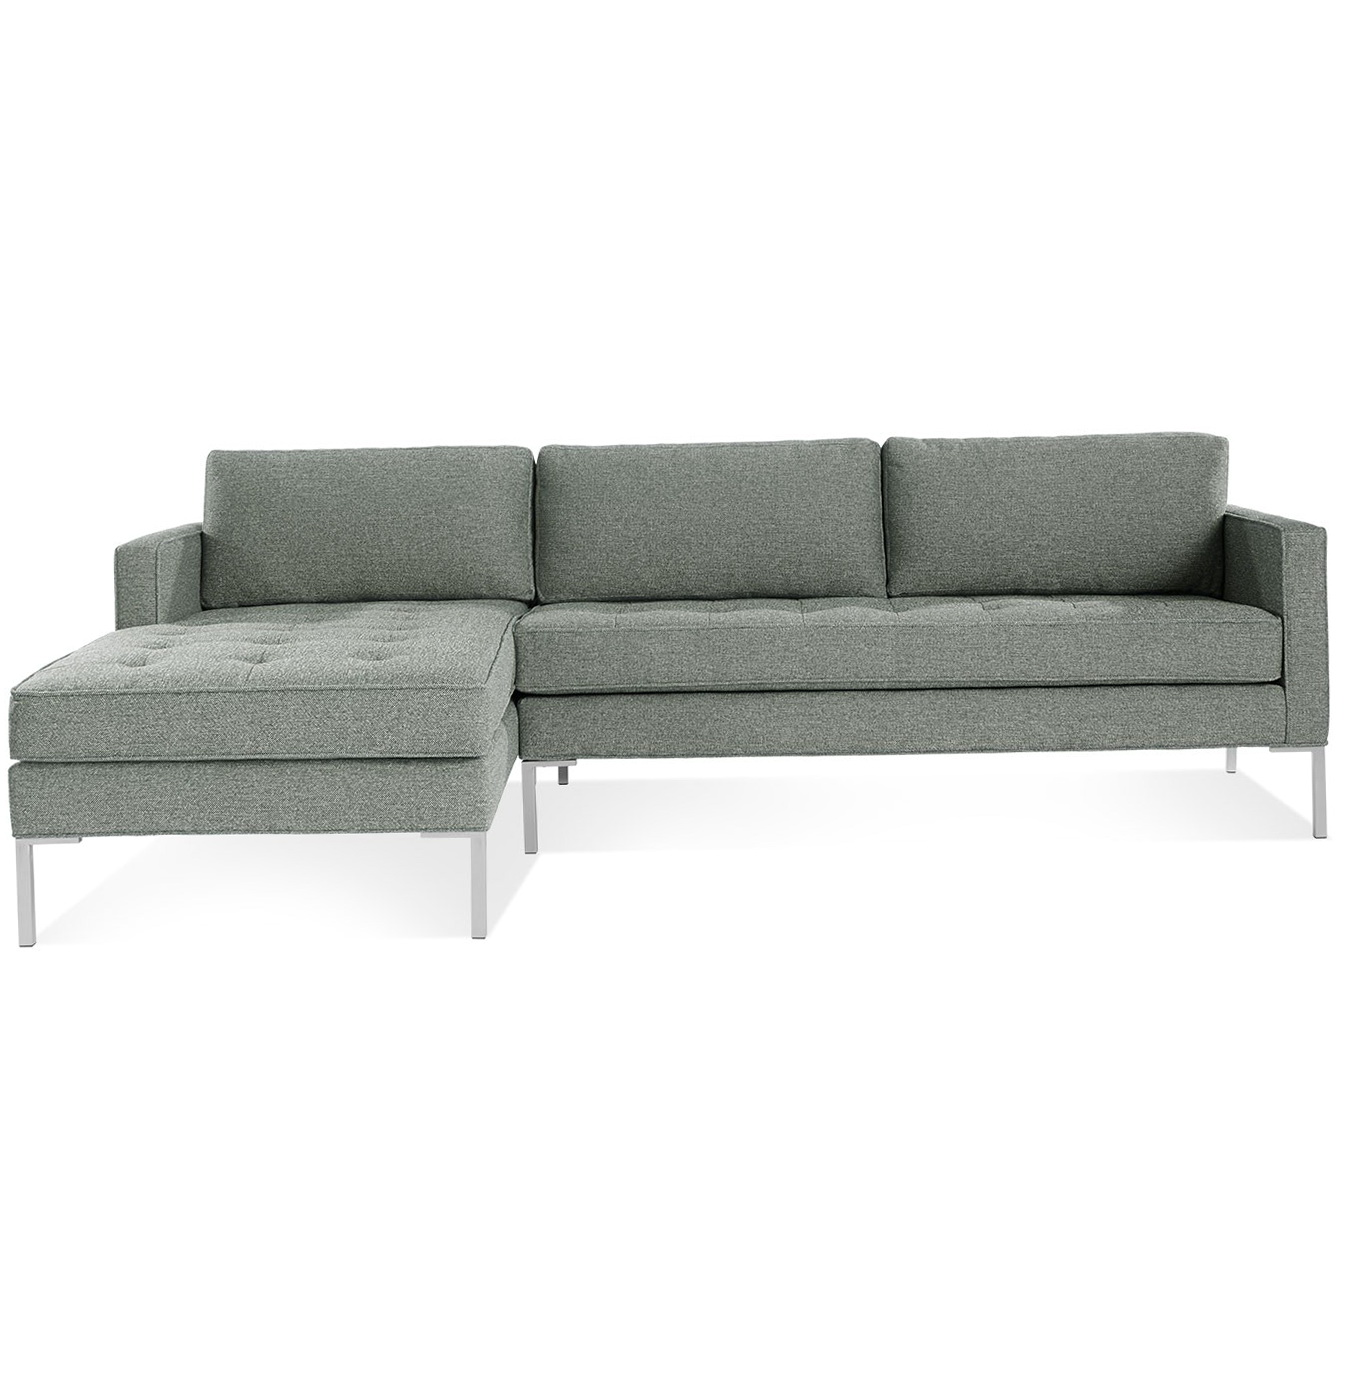 loveseat with chaise right home design ideas